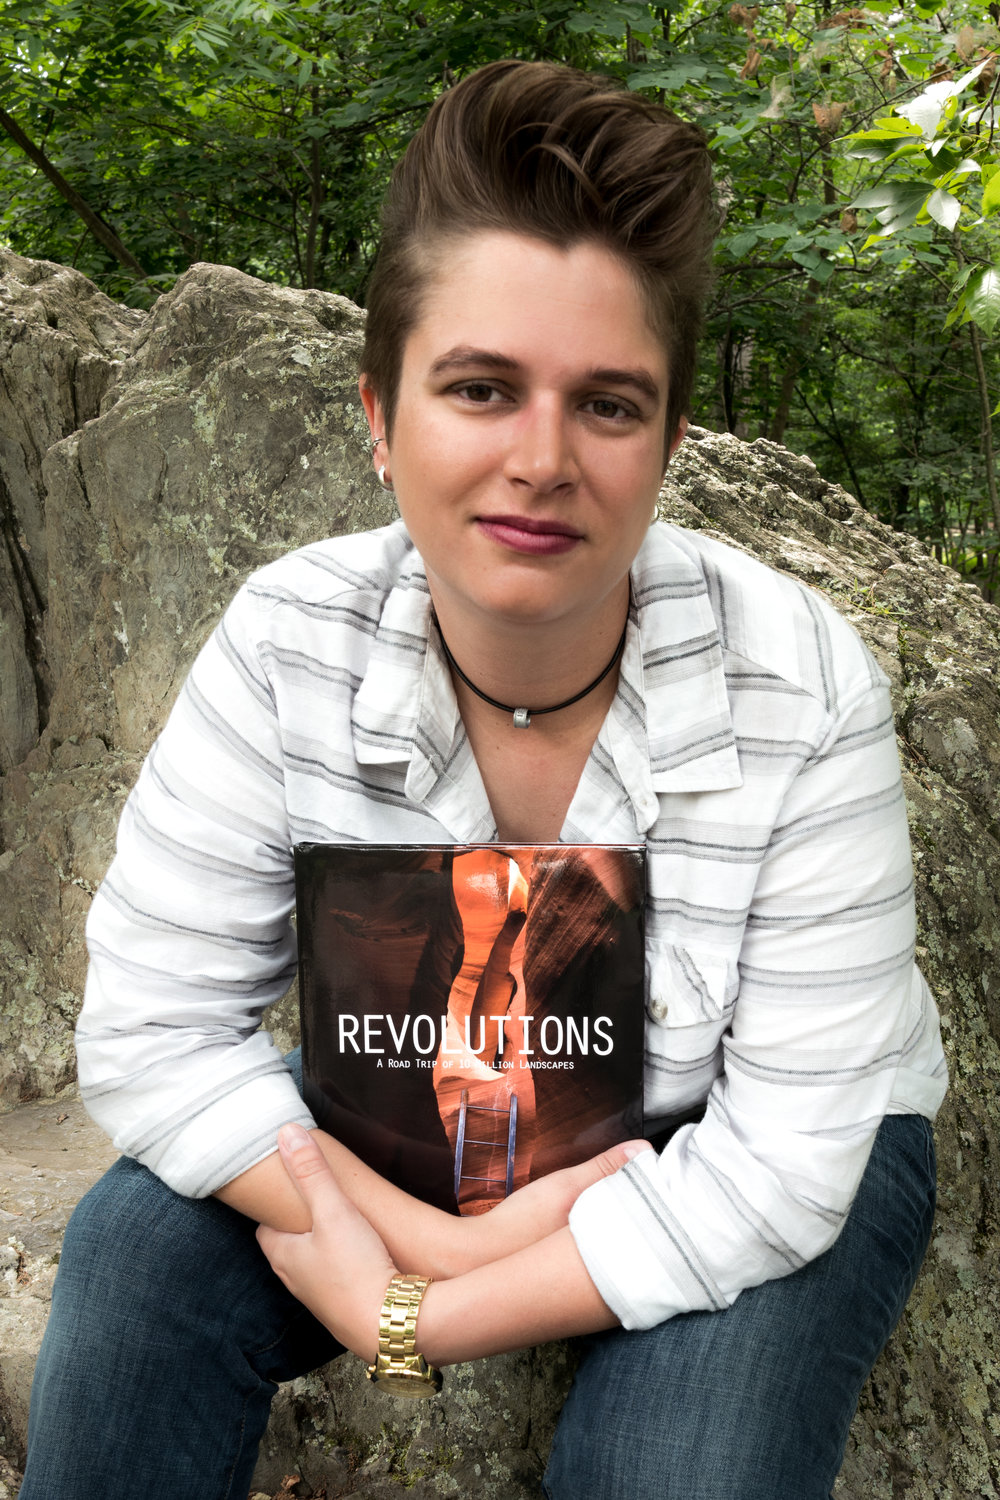 Posing with the final copy of my book, Revolutions.